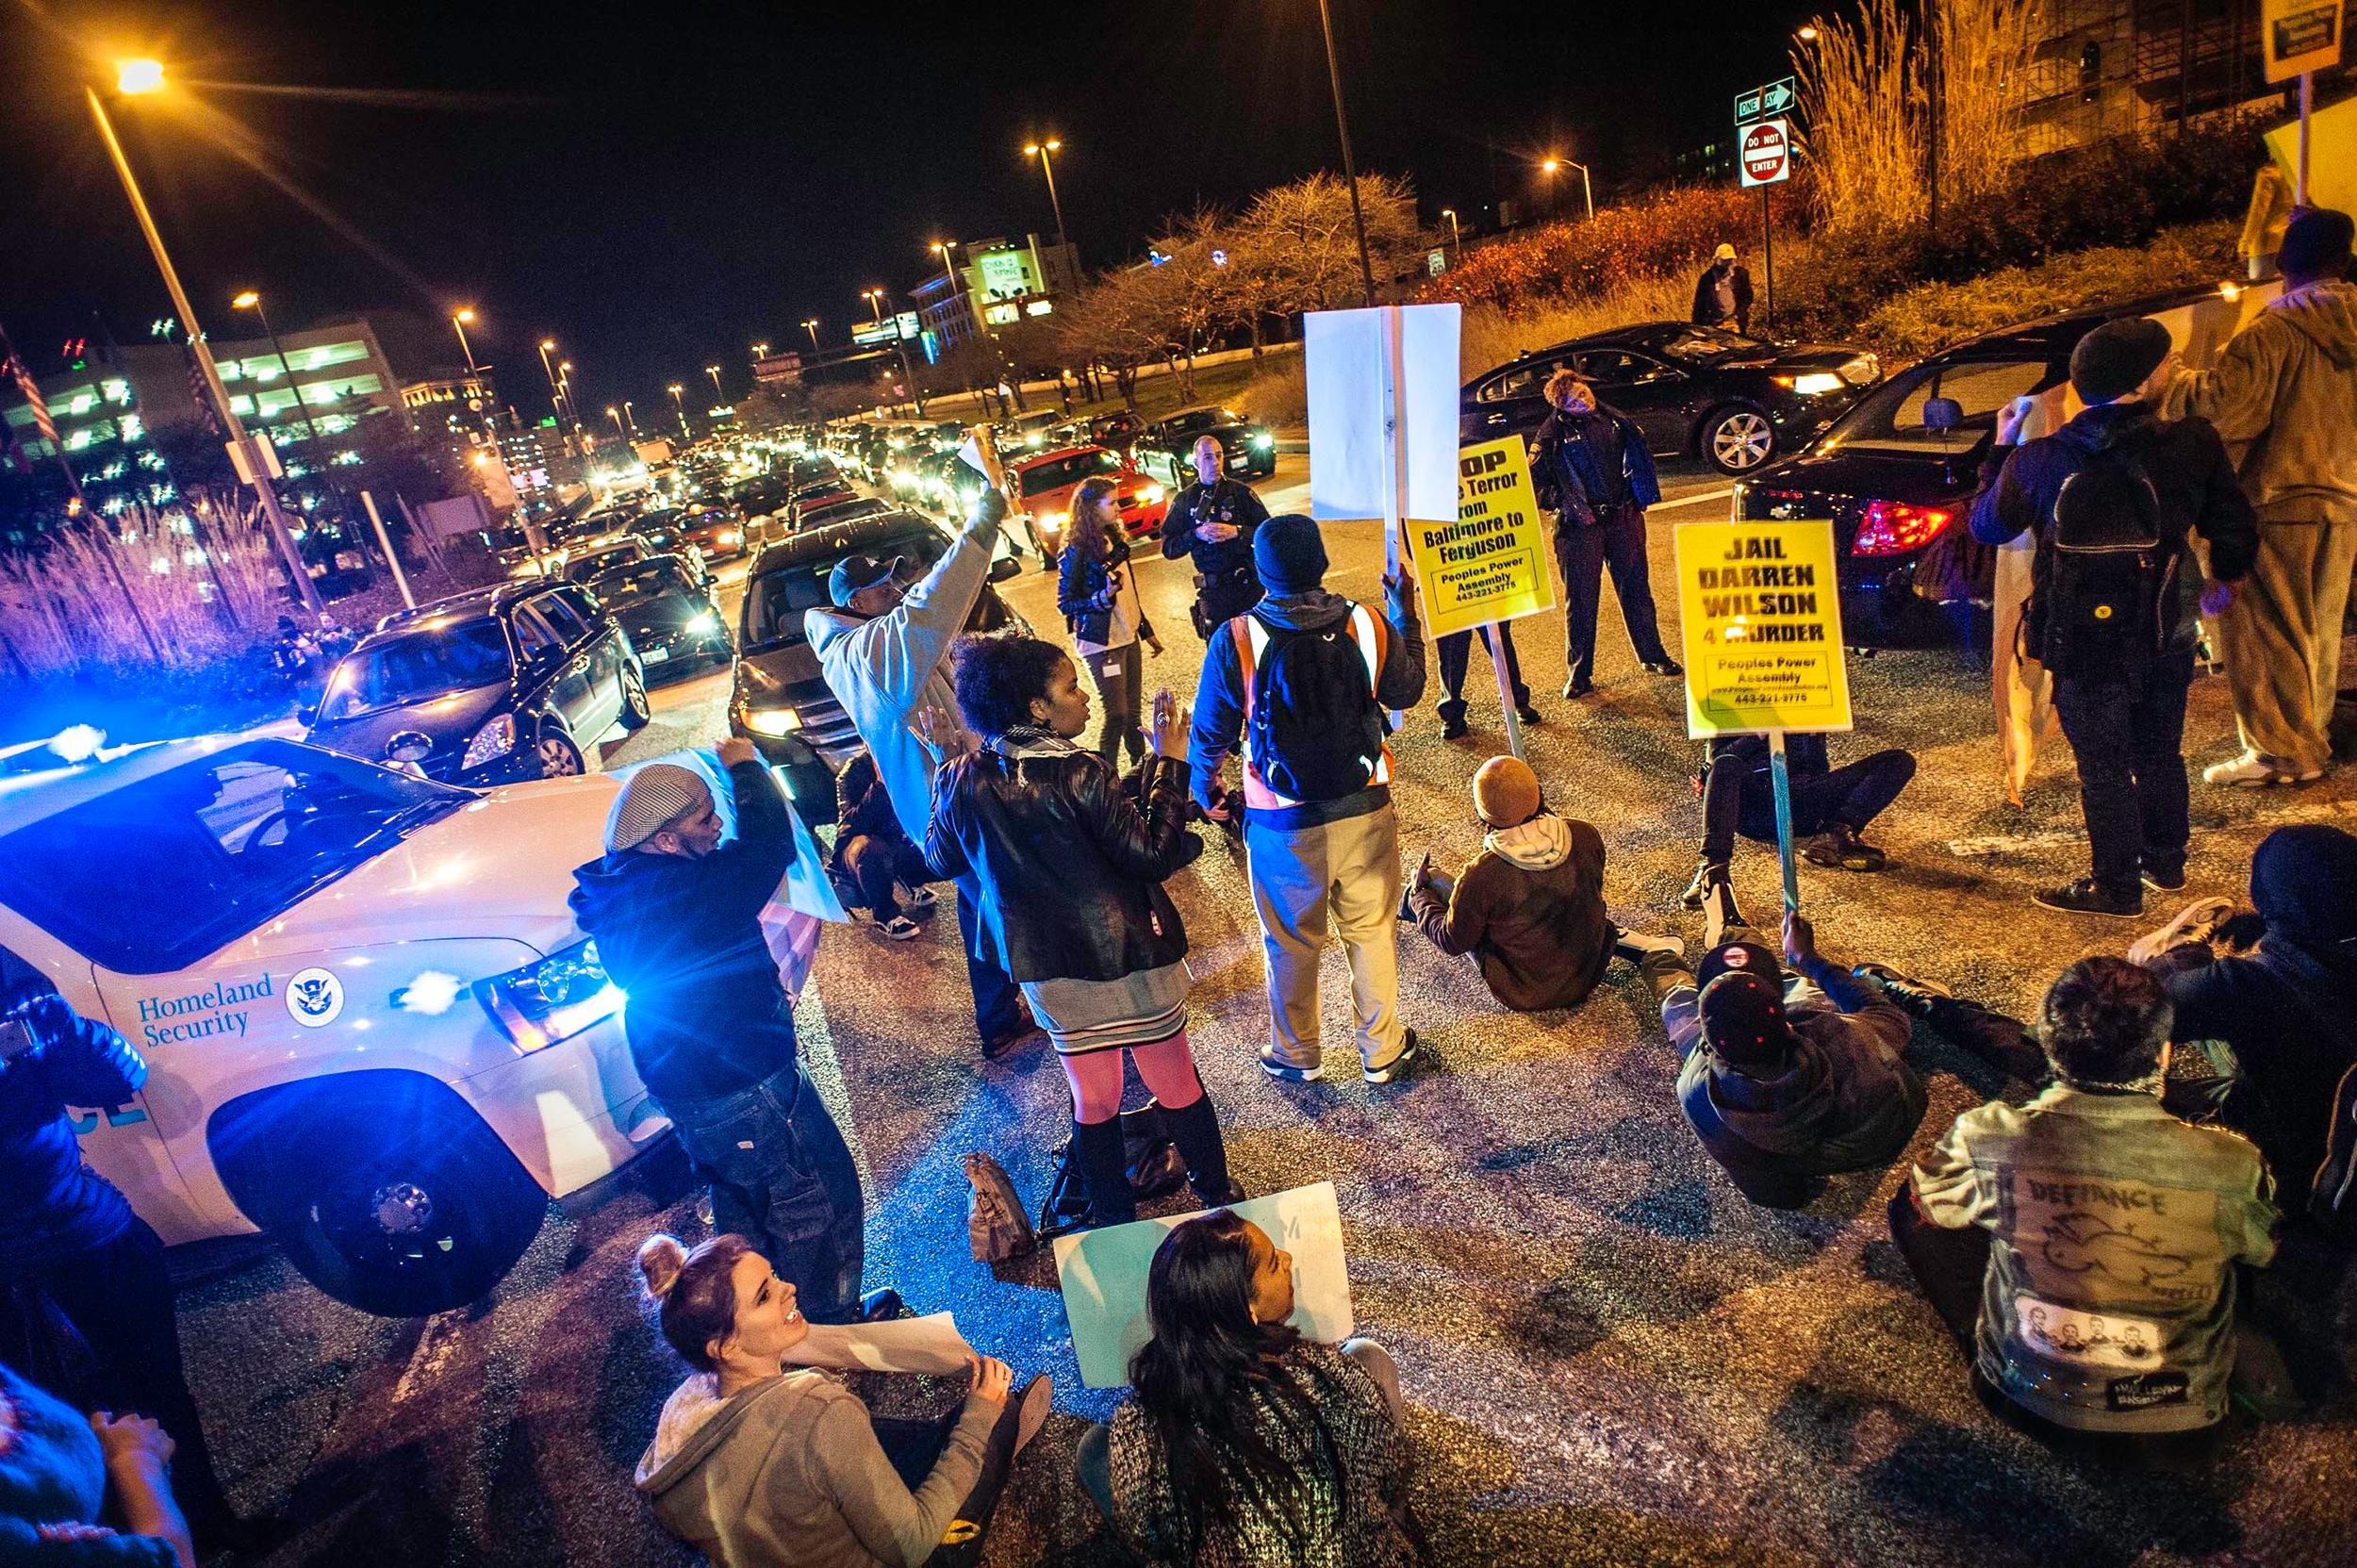 Image: Protesters came out en masse for peaceful demonstrations as they blocked traffic on the Jones Falls Expressway, one of the main arteries out of downtown in Baltimore